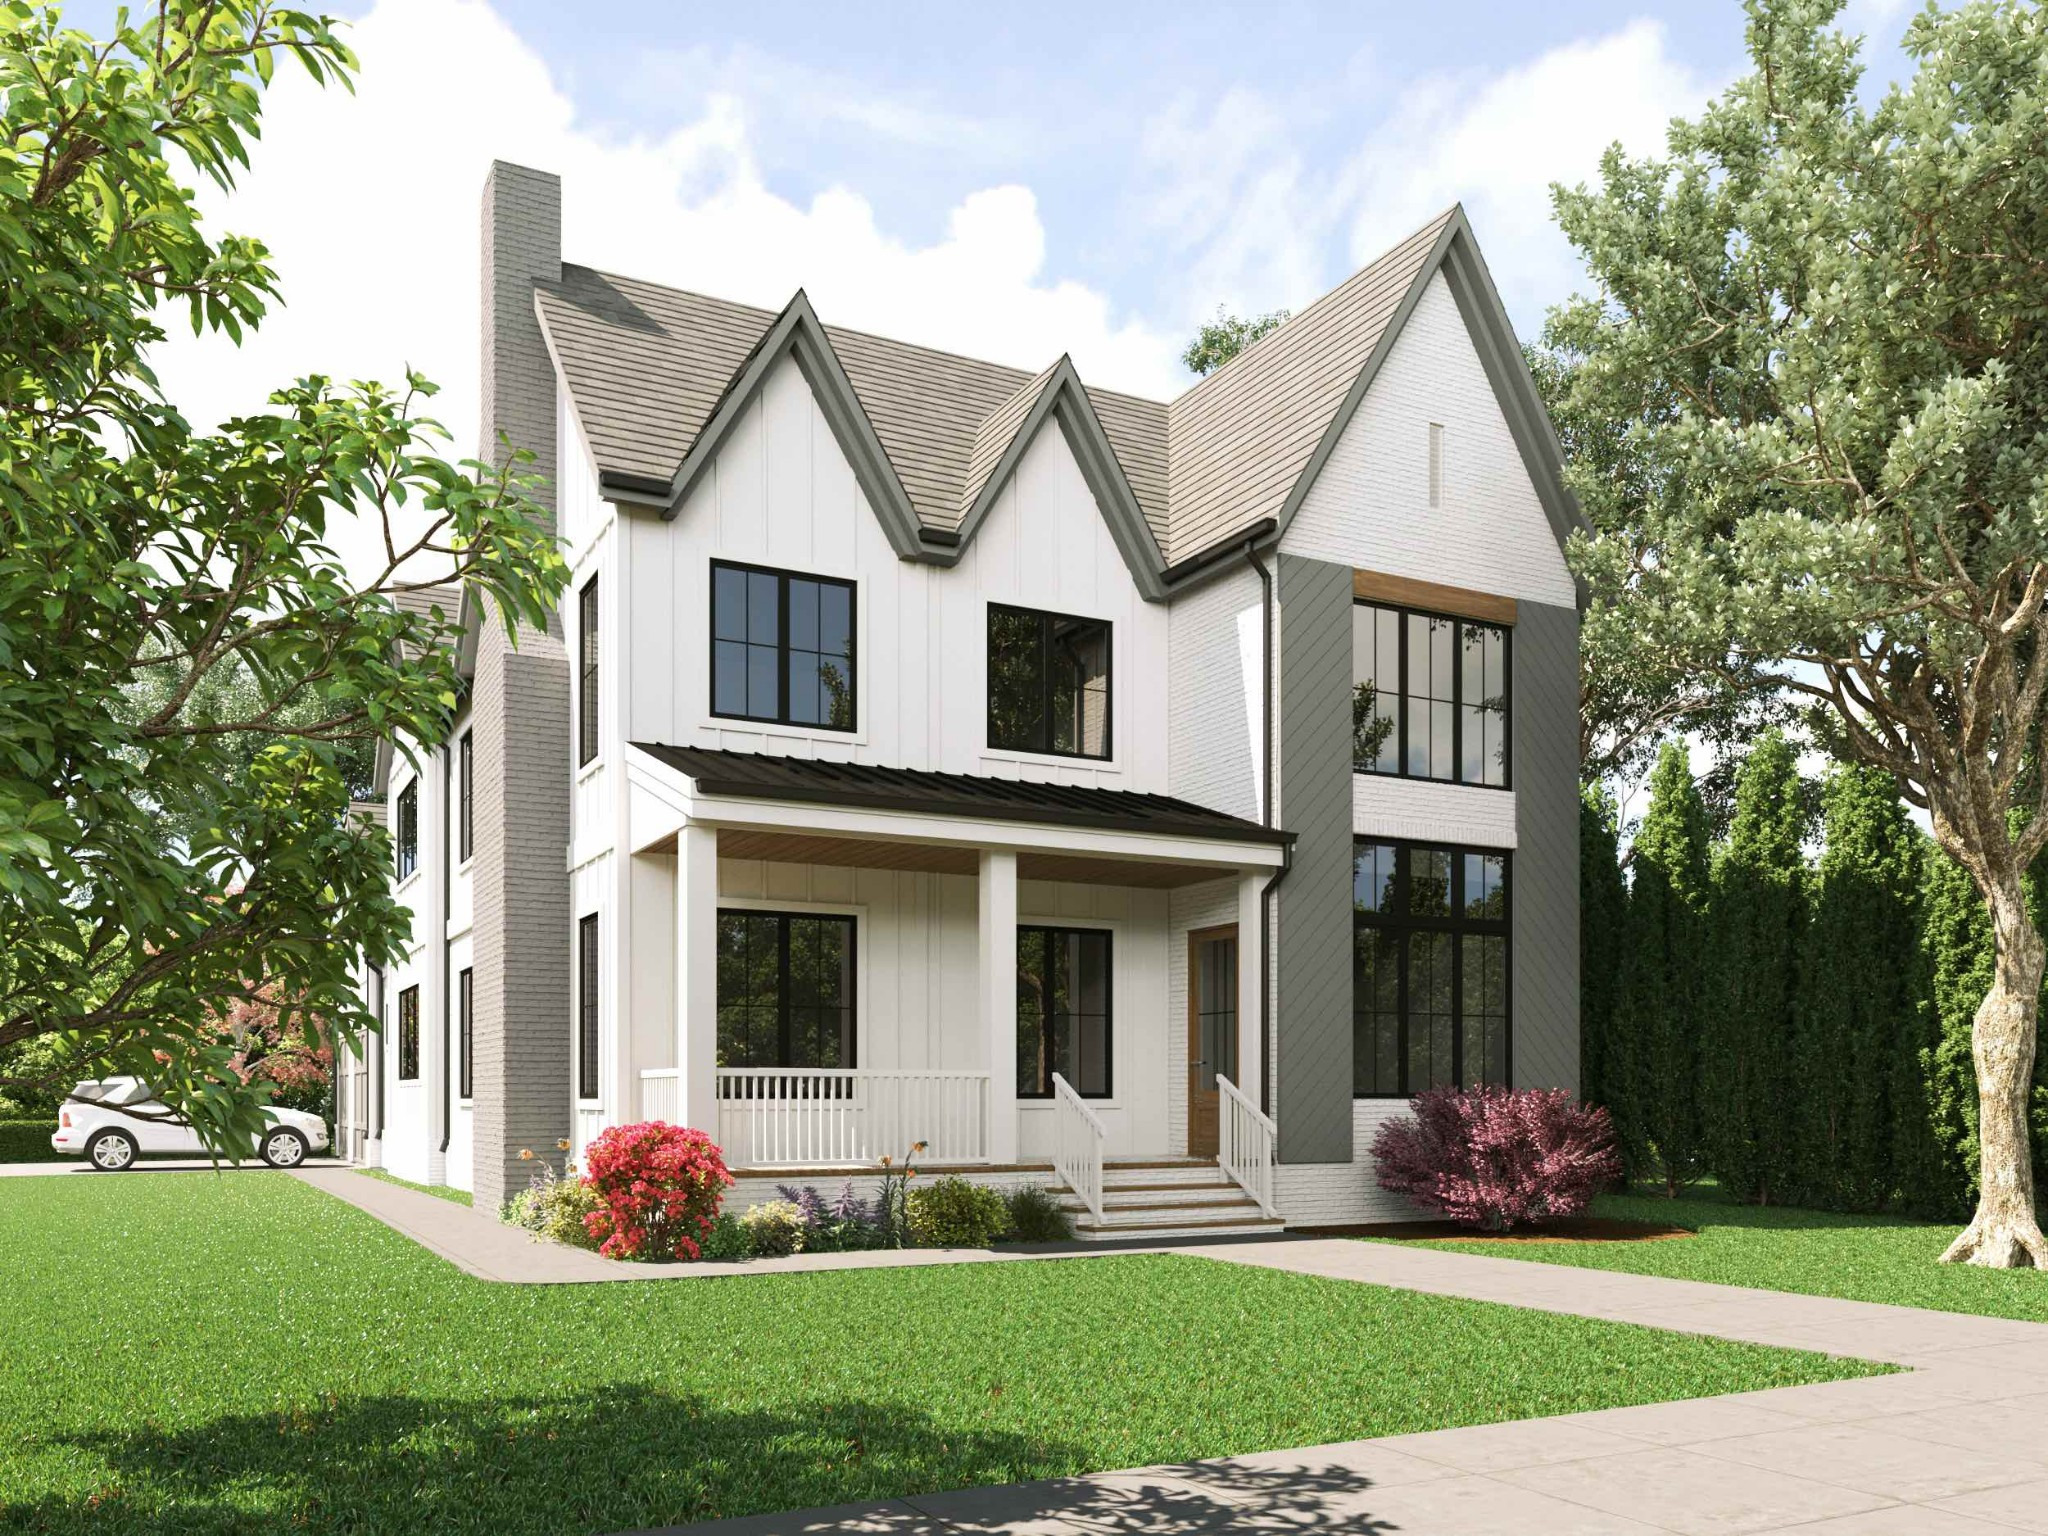 Welcome home to 4114 Idaho Ave. This Sylvan Park home features 4 bedrooms, 5 bathrooms, gourmet kitchen, Master Suite, huge bonus room, flex/office space above attached 2 car garage, and designer finishes. All of this located in the heart of Sylvan Park on a rare corner lot.